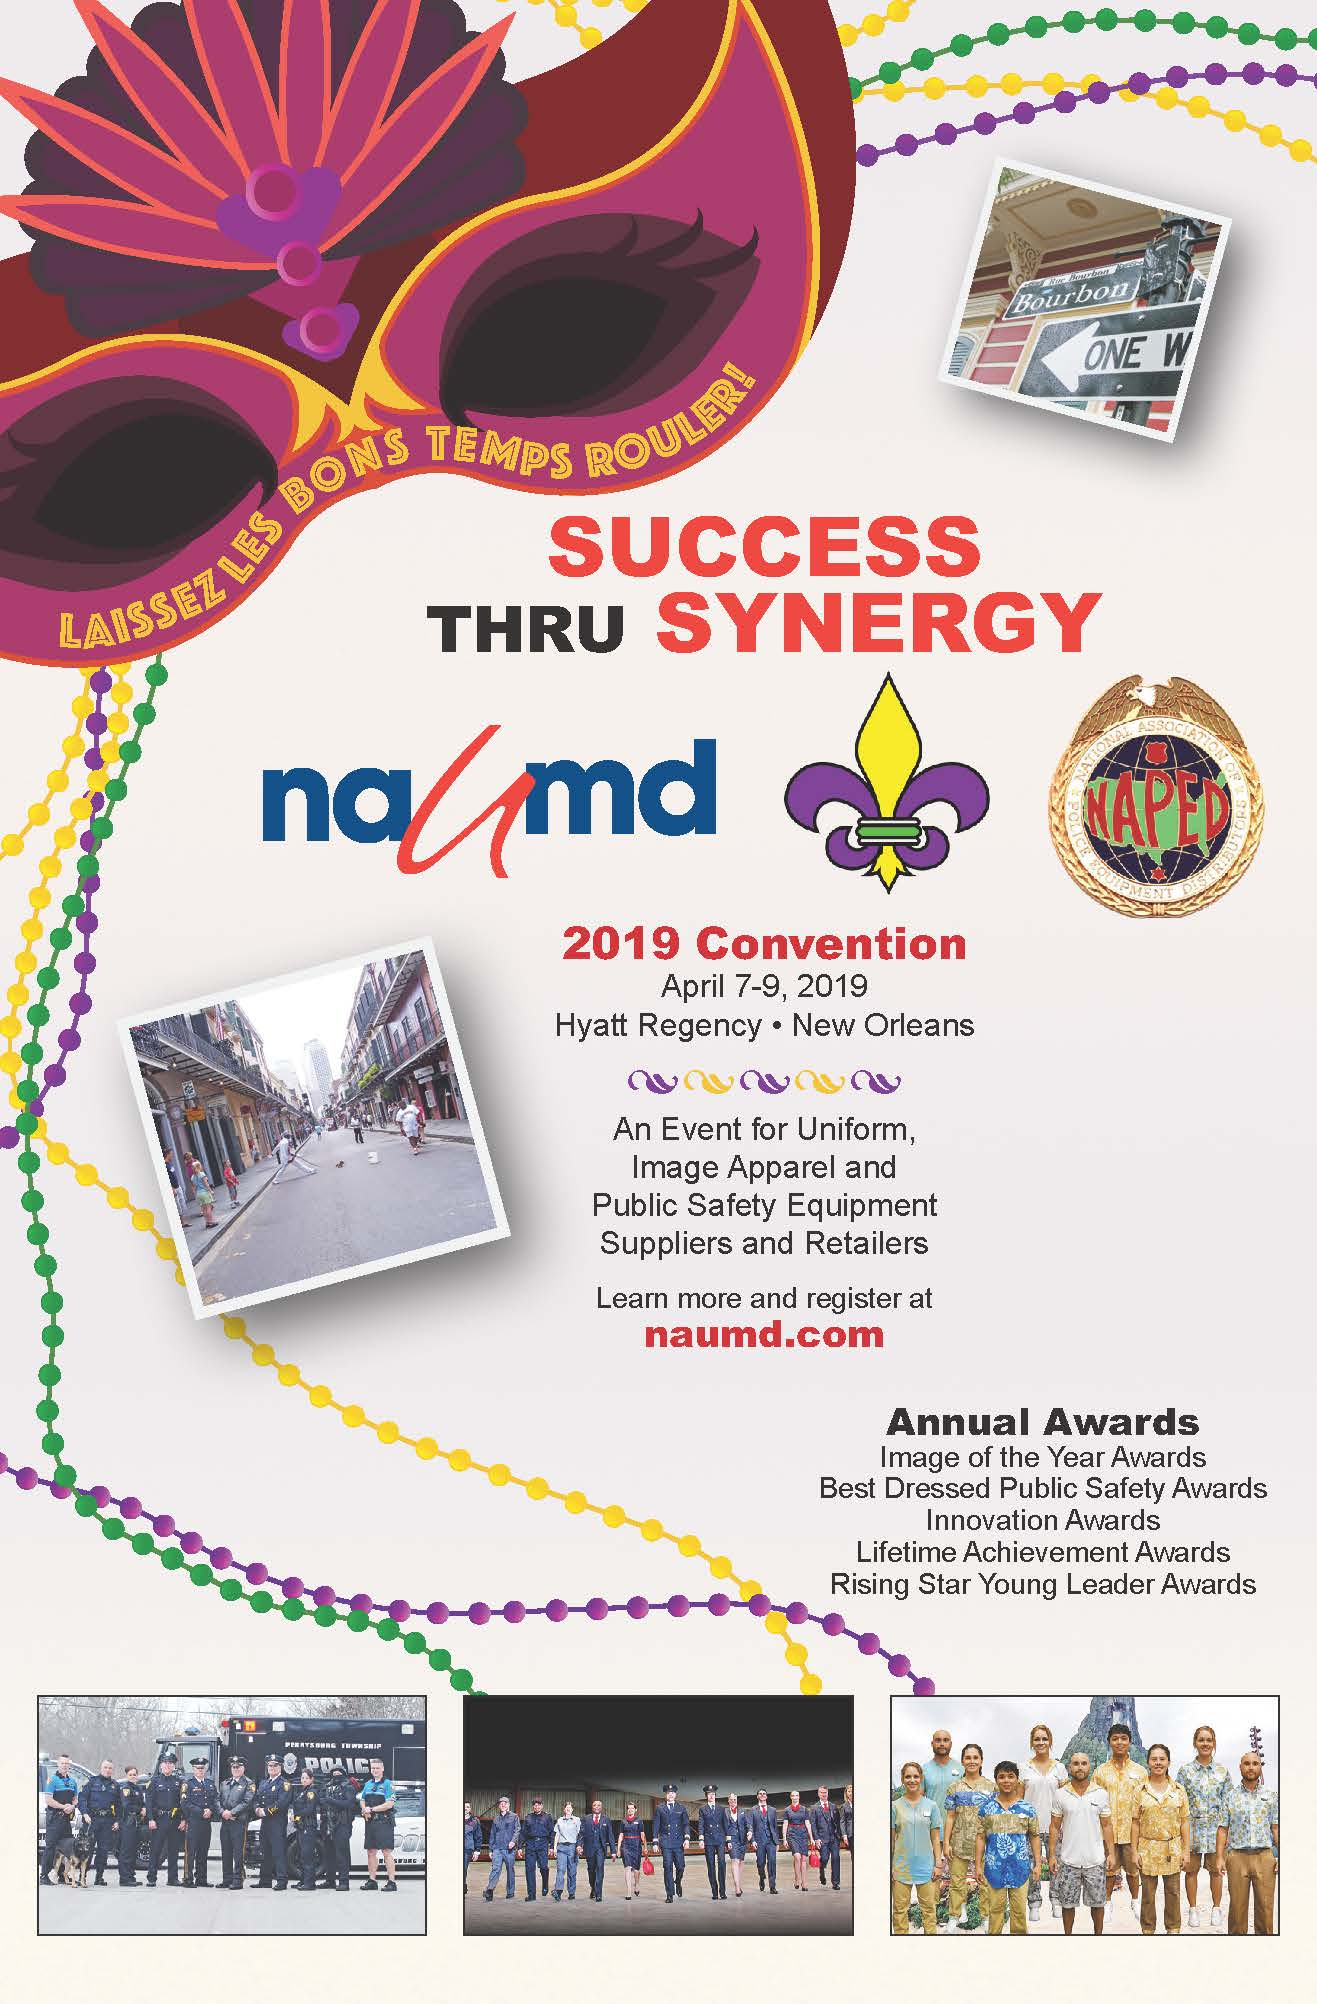 NAPED Announces Joint Annual Meeting with NAUMD